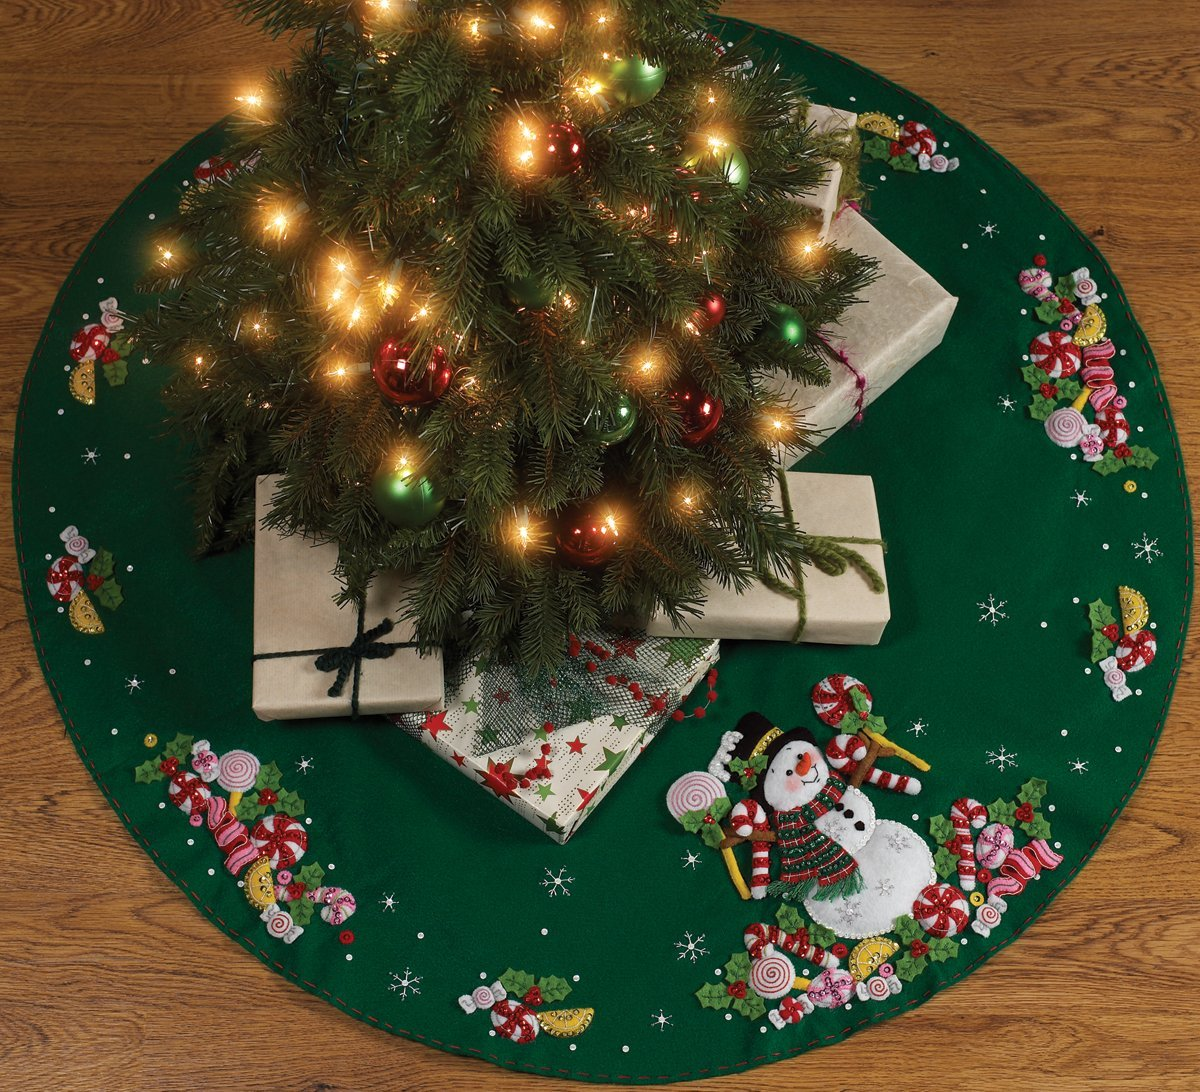 Bucilla Candy Snowman Tree Skirt Felt Applique Kit 86307 43-Inch Round